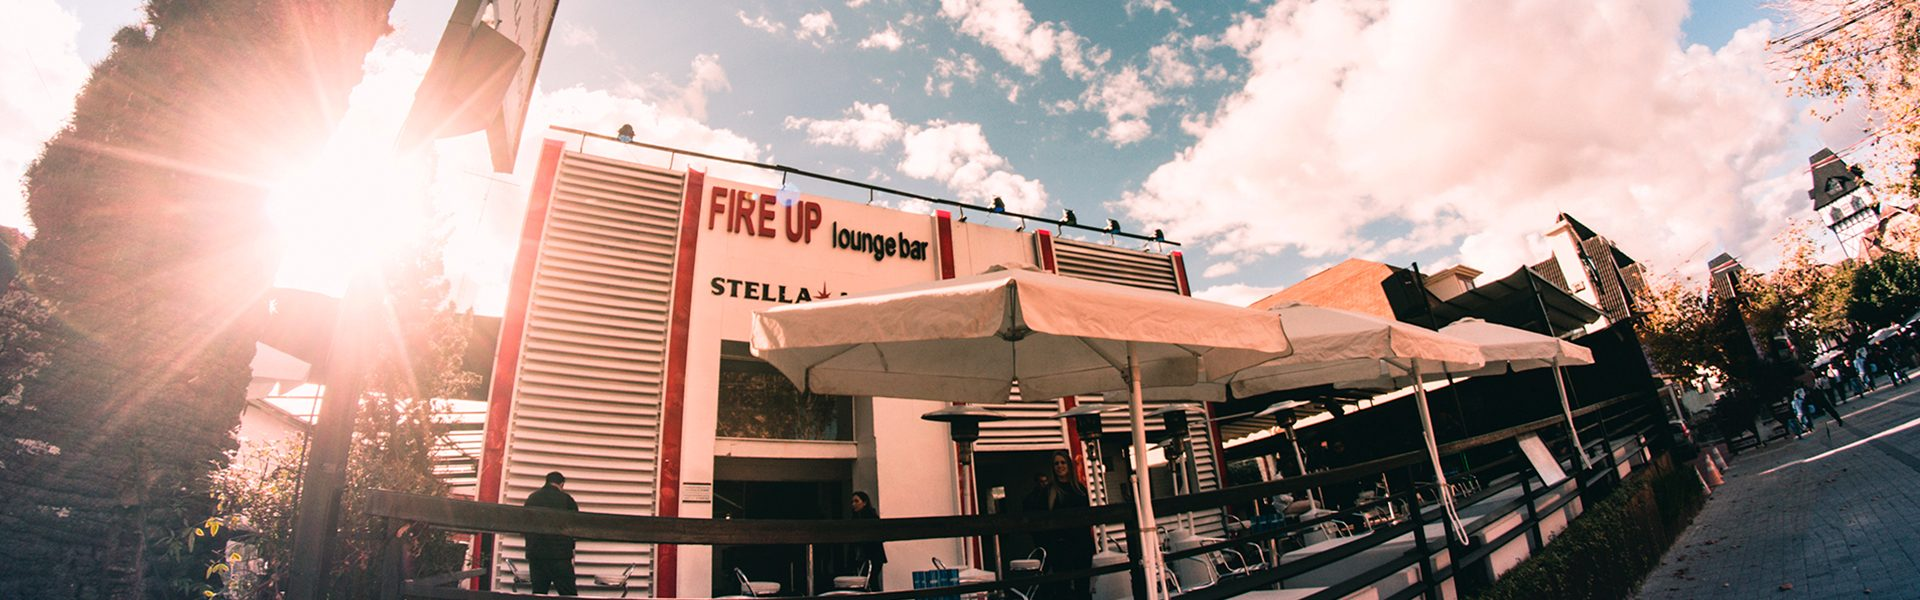 Fire Up Lounge Bar - Campos do Jordão - SP